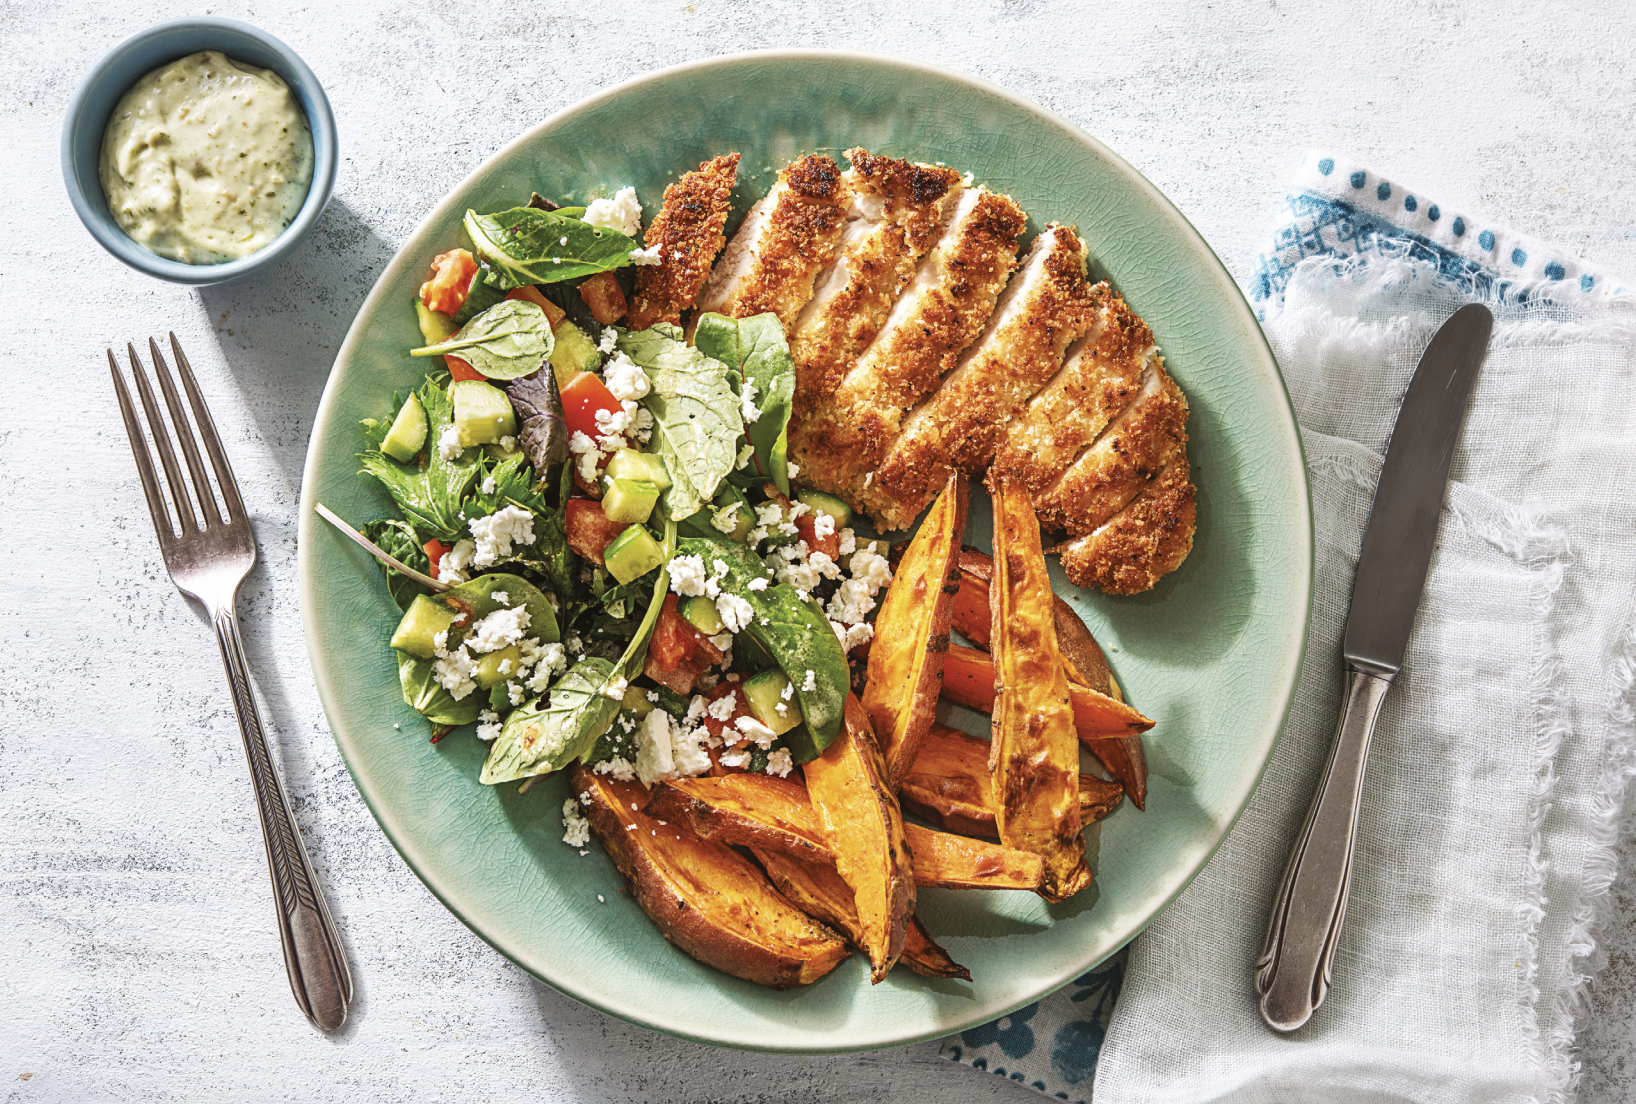 emony Crumbed Chicken with Pesto Dressing & Sweet Potato Wedges